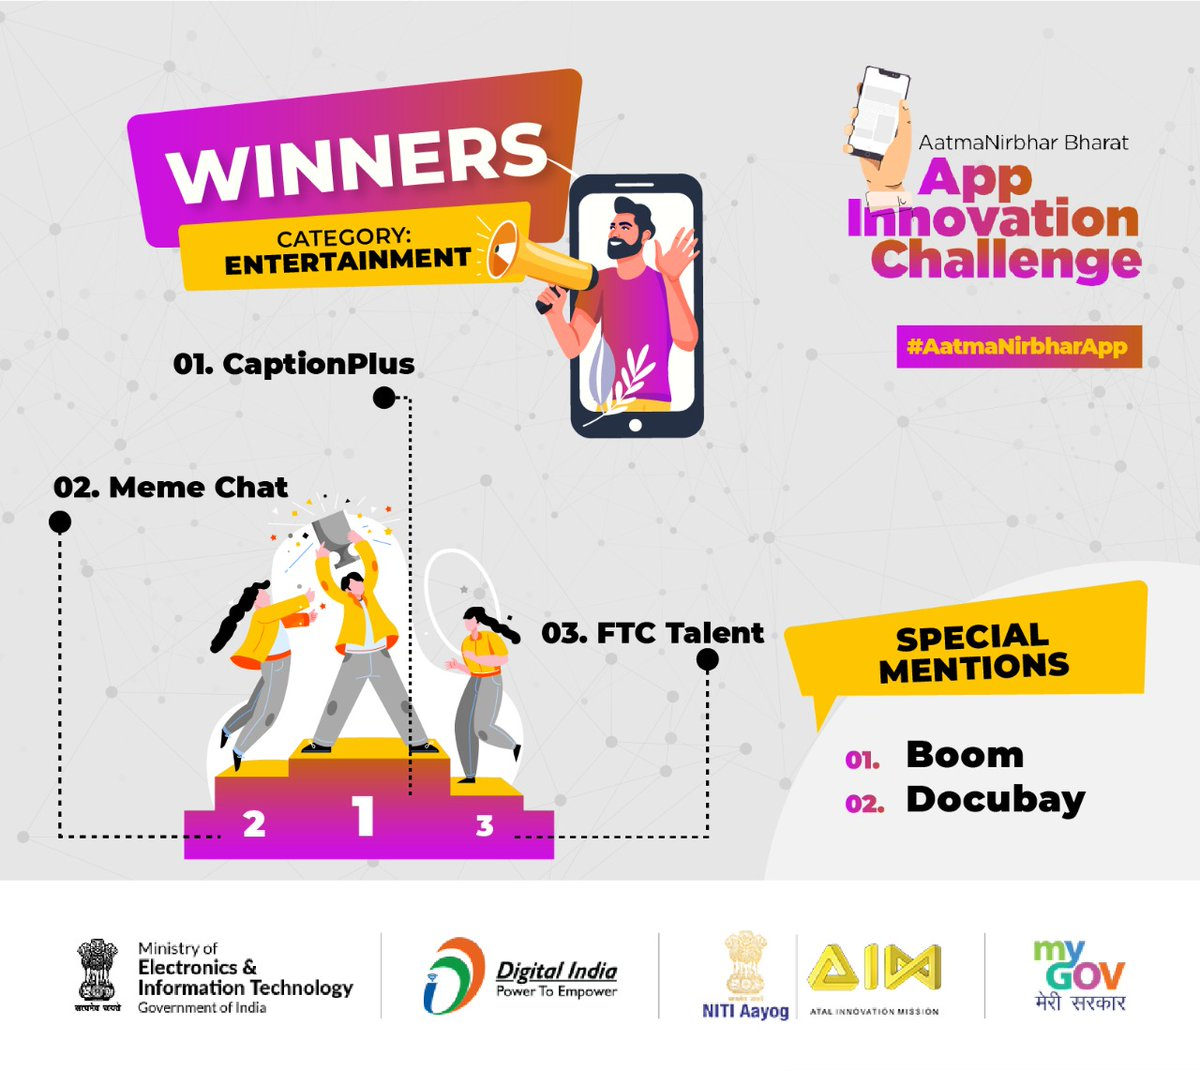 It's an extreme pleasure to announce the winners of the 'Entertainment Category', in the #AatmaNirbharApp Challenge. Congratulations! All entries were of a very high standard, and we urge you to download and start using these 100% Indian Apps today!